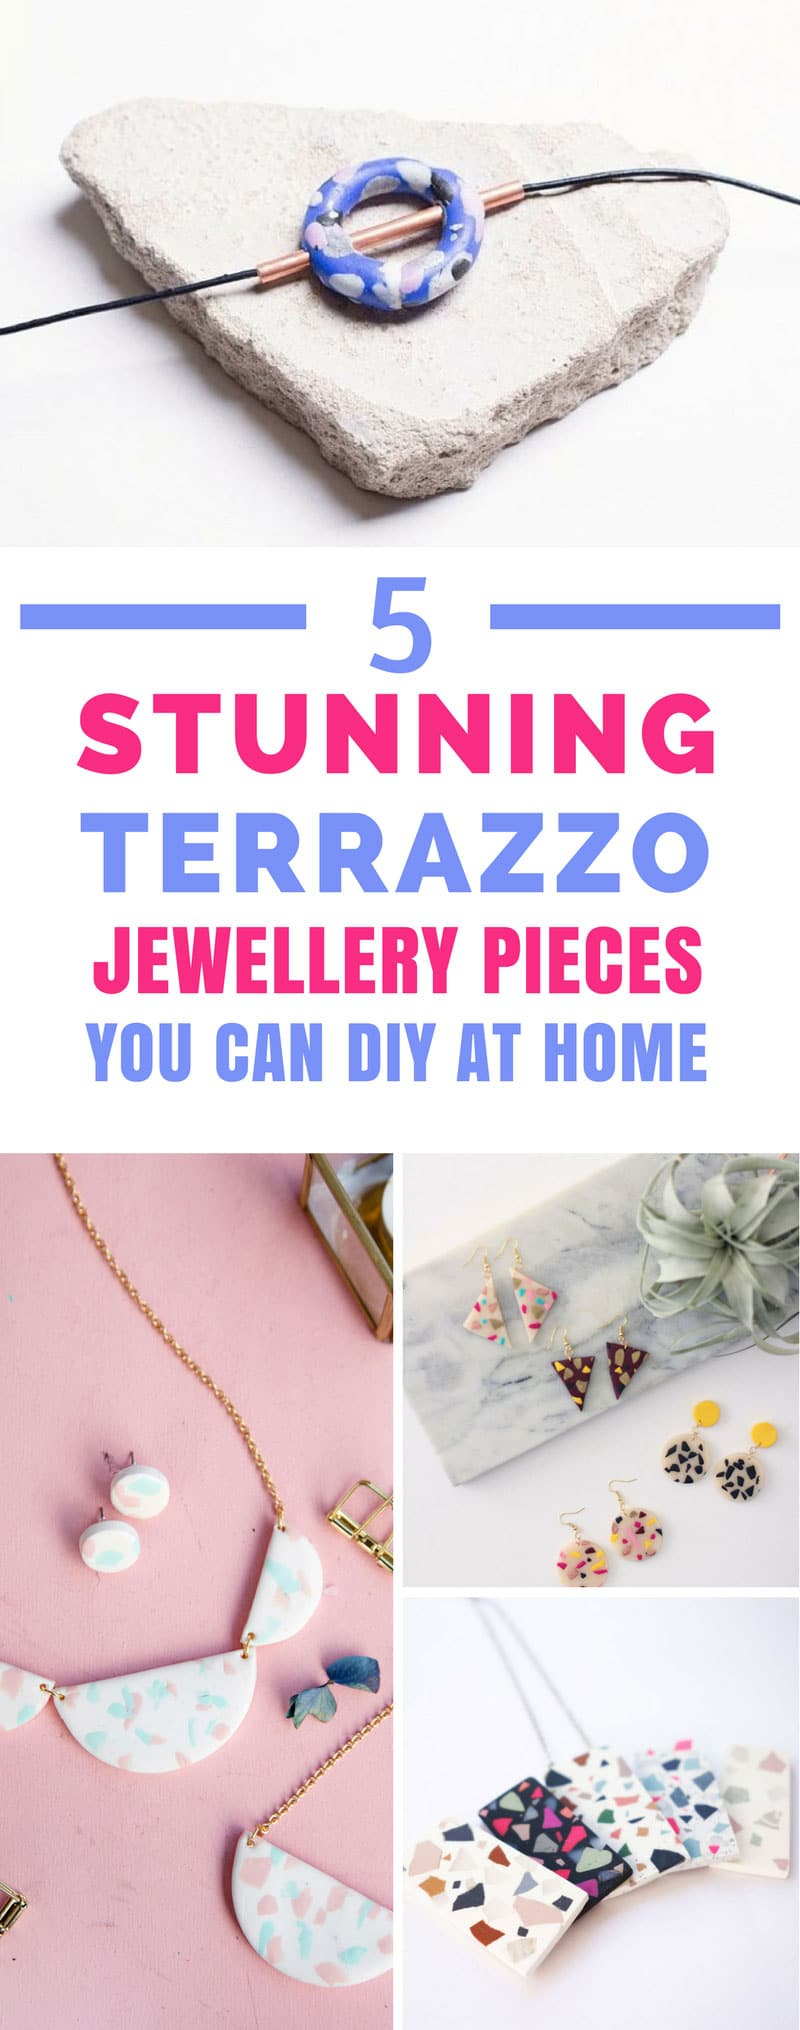 DIY Terrazzo Jewellery - Who says on trend statement jewellery has to cost the earth - thanks to these simple DIY projects you can make your own at home on a budget! #terrazzo #diy #jewellery